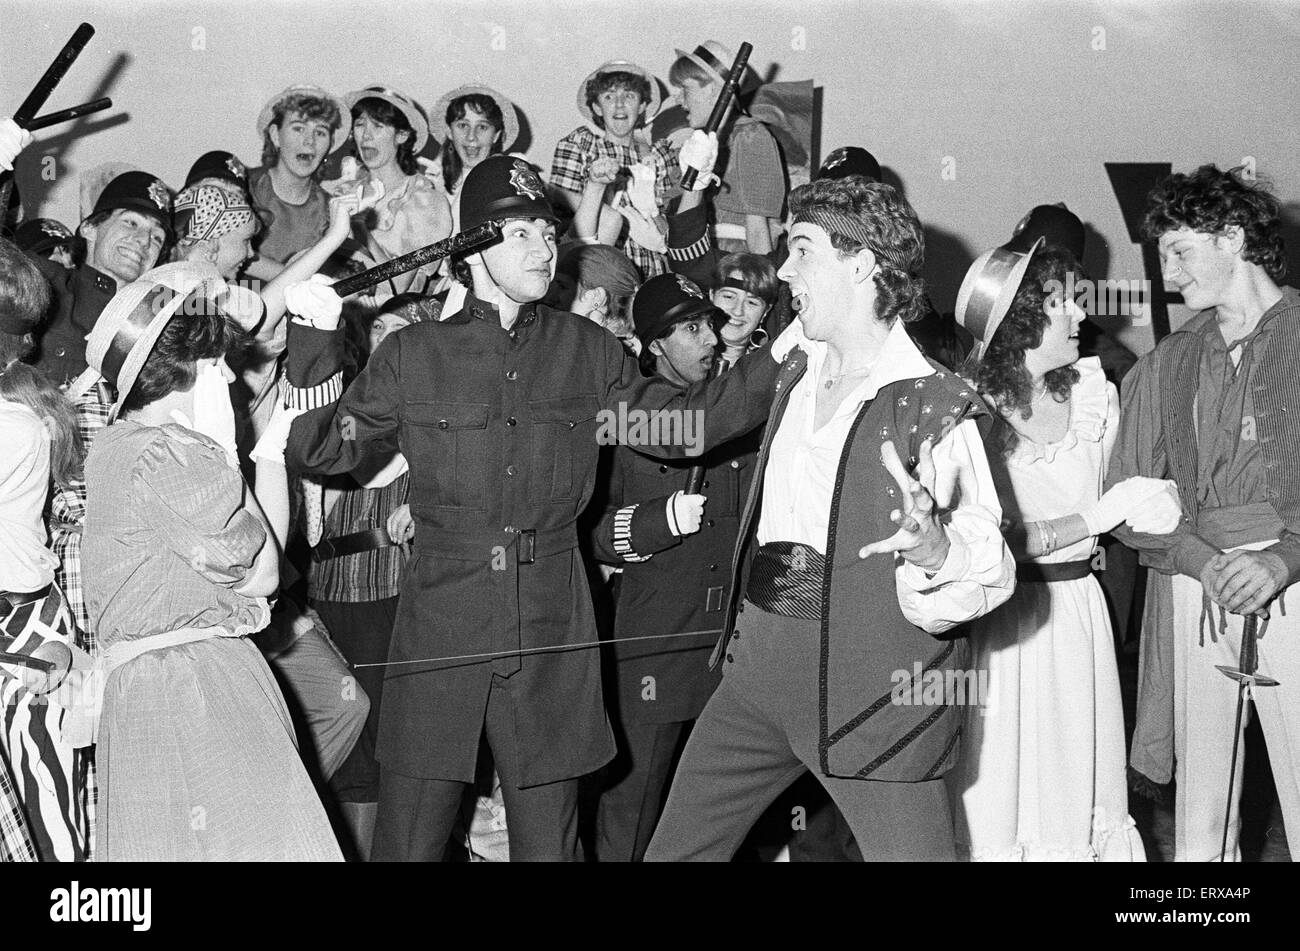 Huddersfield New College production of G&S Pirates of Penzance. 6th December 1985. - Stock Image